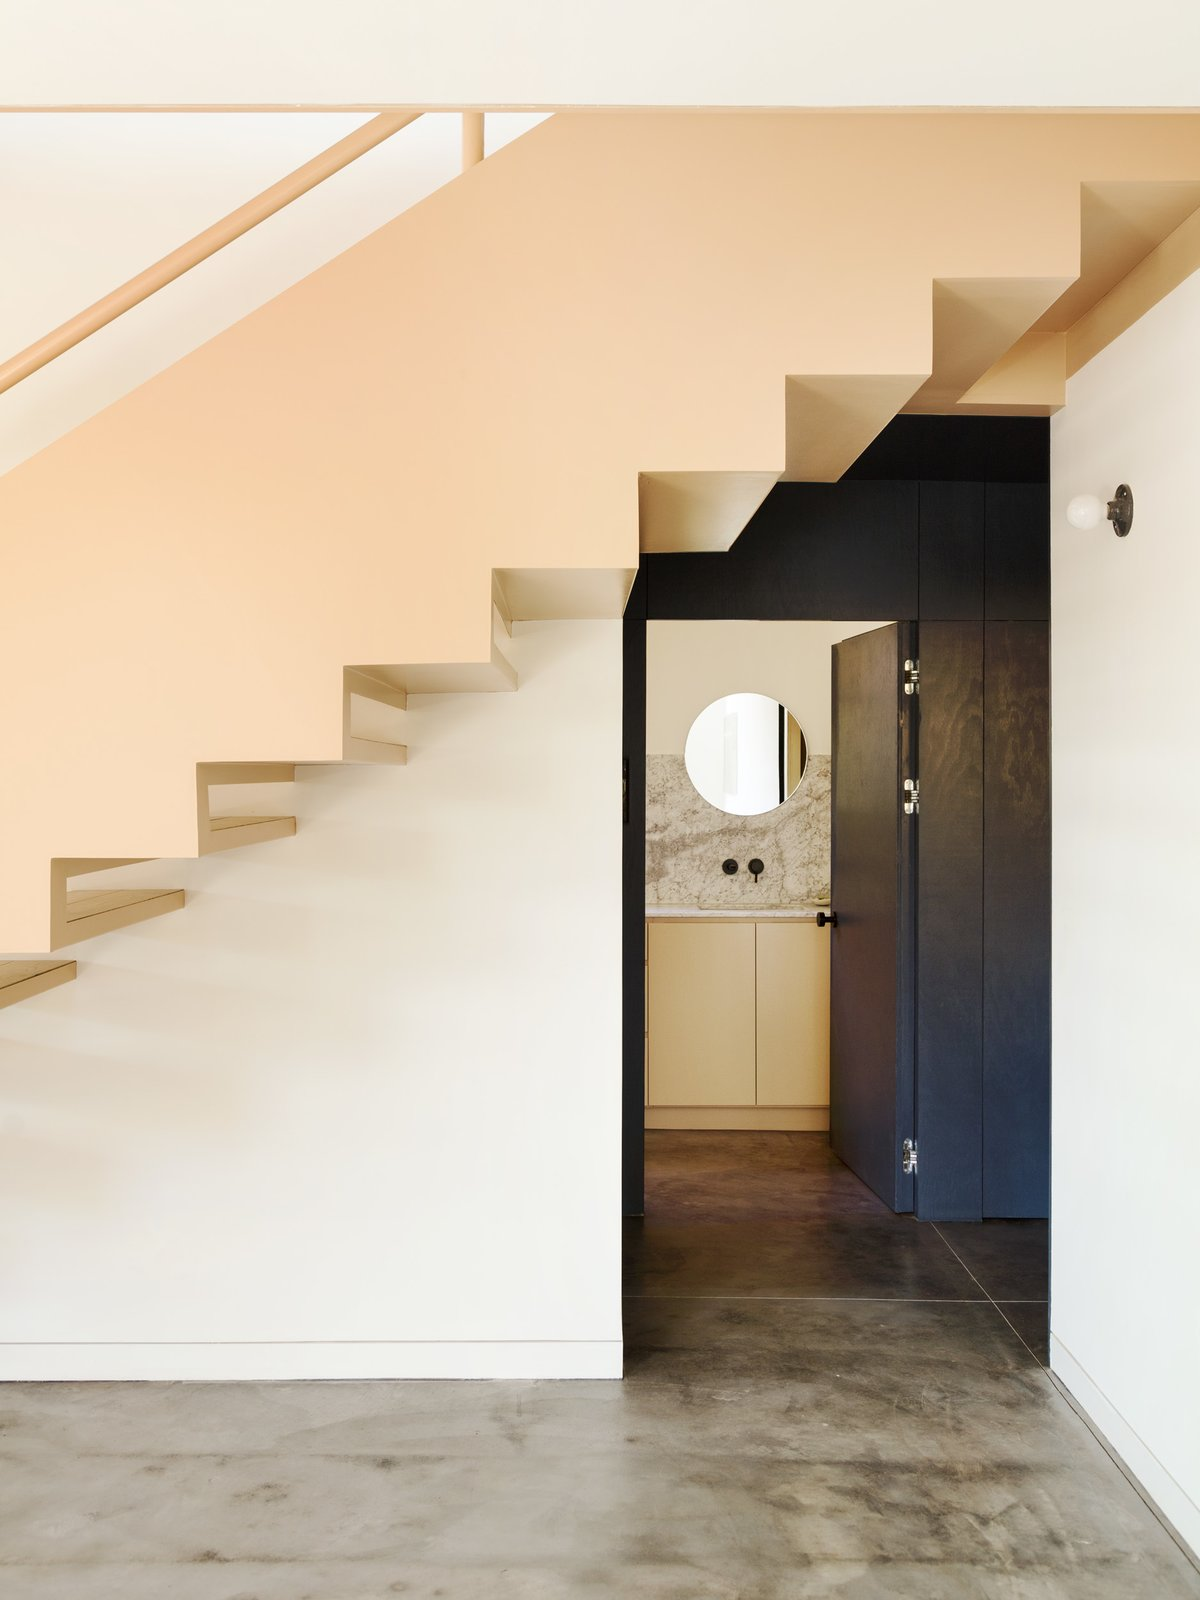 Hallway and Concrete Floor On a sloped plot in the Echo Park neighborhood of Los Angeles, an almost 100-year-old anonymous bungalow was rendered in pink, referencing the sun-kissed stucco that's so common in the region.  Mexico City-based architecture firm PRODUCTORA completely remodeled and renovated the home of graphic designer Jessica Fleischmann, daughter of Ernst Fleischmann, who led the Los Angeles Philharmonic and commissioned Frank Gehry to build the Walt Disney Concert Hall. Over the 15 years she lived in the home, she developed a strong connection to the neighborhood and the house itself, which inspired her to renovate it. With her strong affinity for design, she was thoroughly involved in the creative process, including selecting the particular colors that are interspersed throughout the renovation and extension of the house.  Photo 6 of 14 in Grids and Colors Inspire the Renovation of a Graphic Designer's Pink L.A. Bungalow